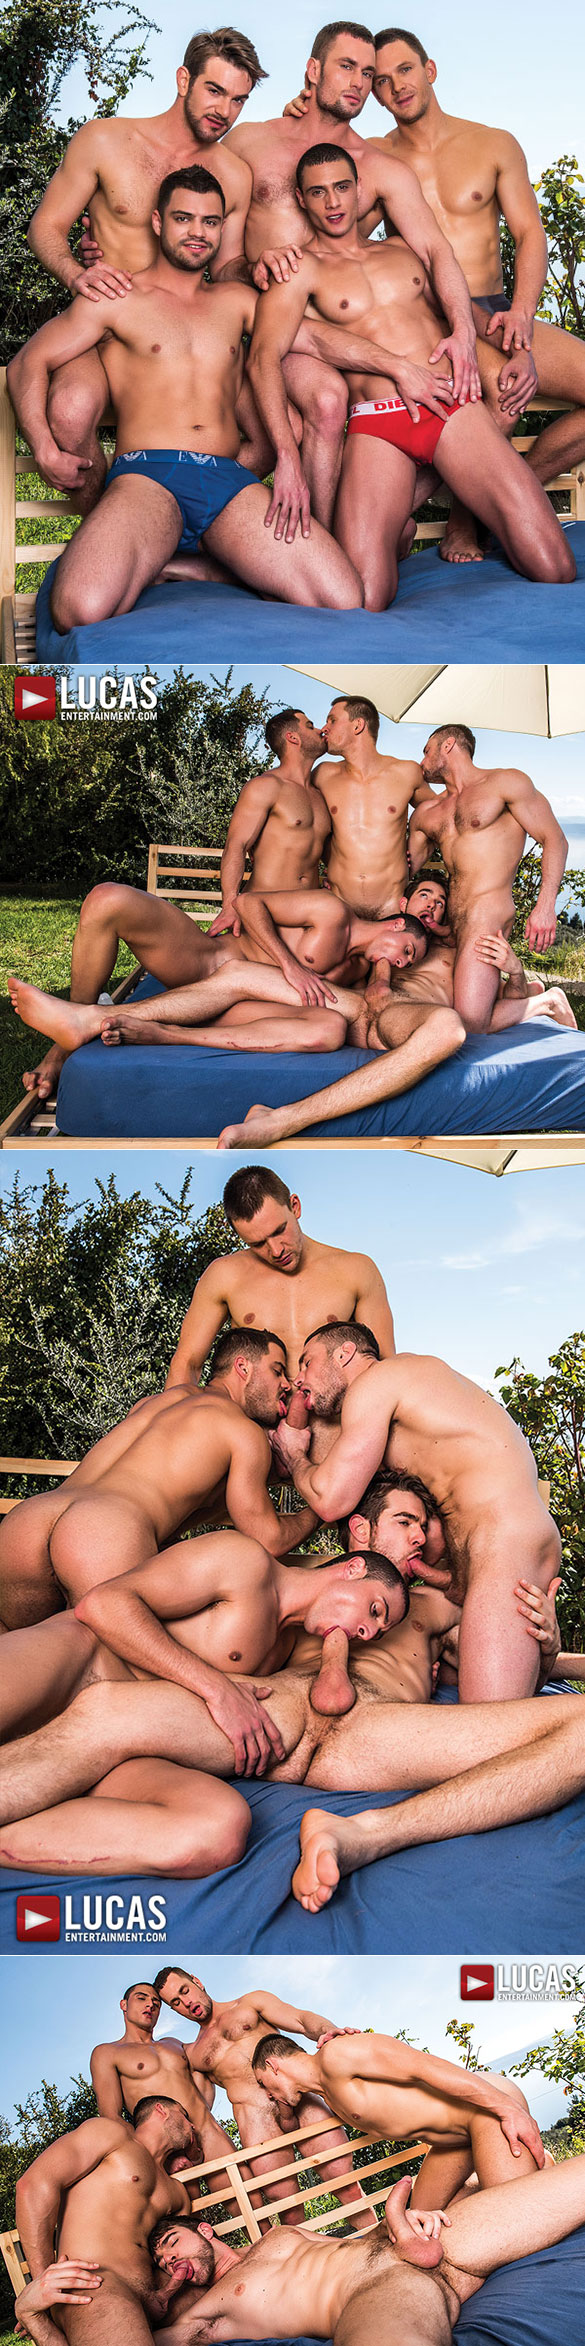 "Lucas Entertainment: Stas Landon, Andrey Vic, Zander Craze, Ares Fly and Javi Velaro's bareback sex party in ""Fully Loaded: Raw Double Penetrations 3"""